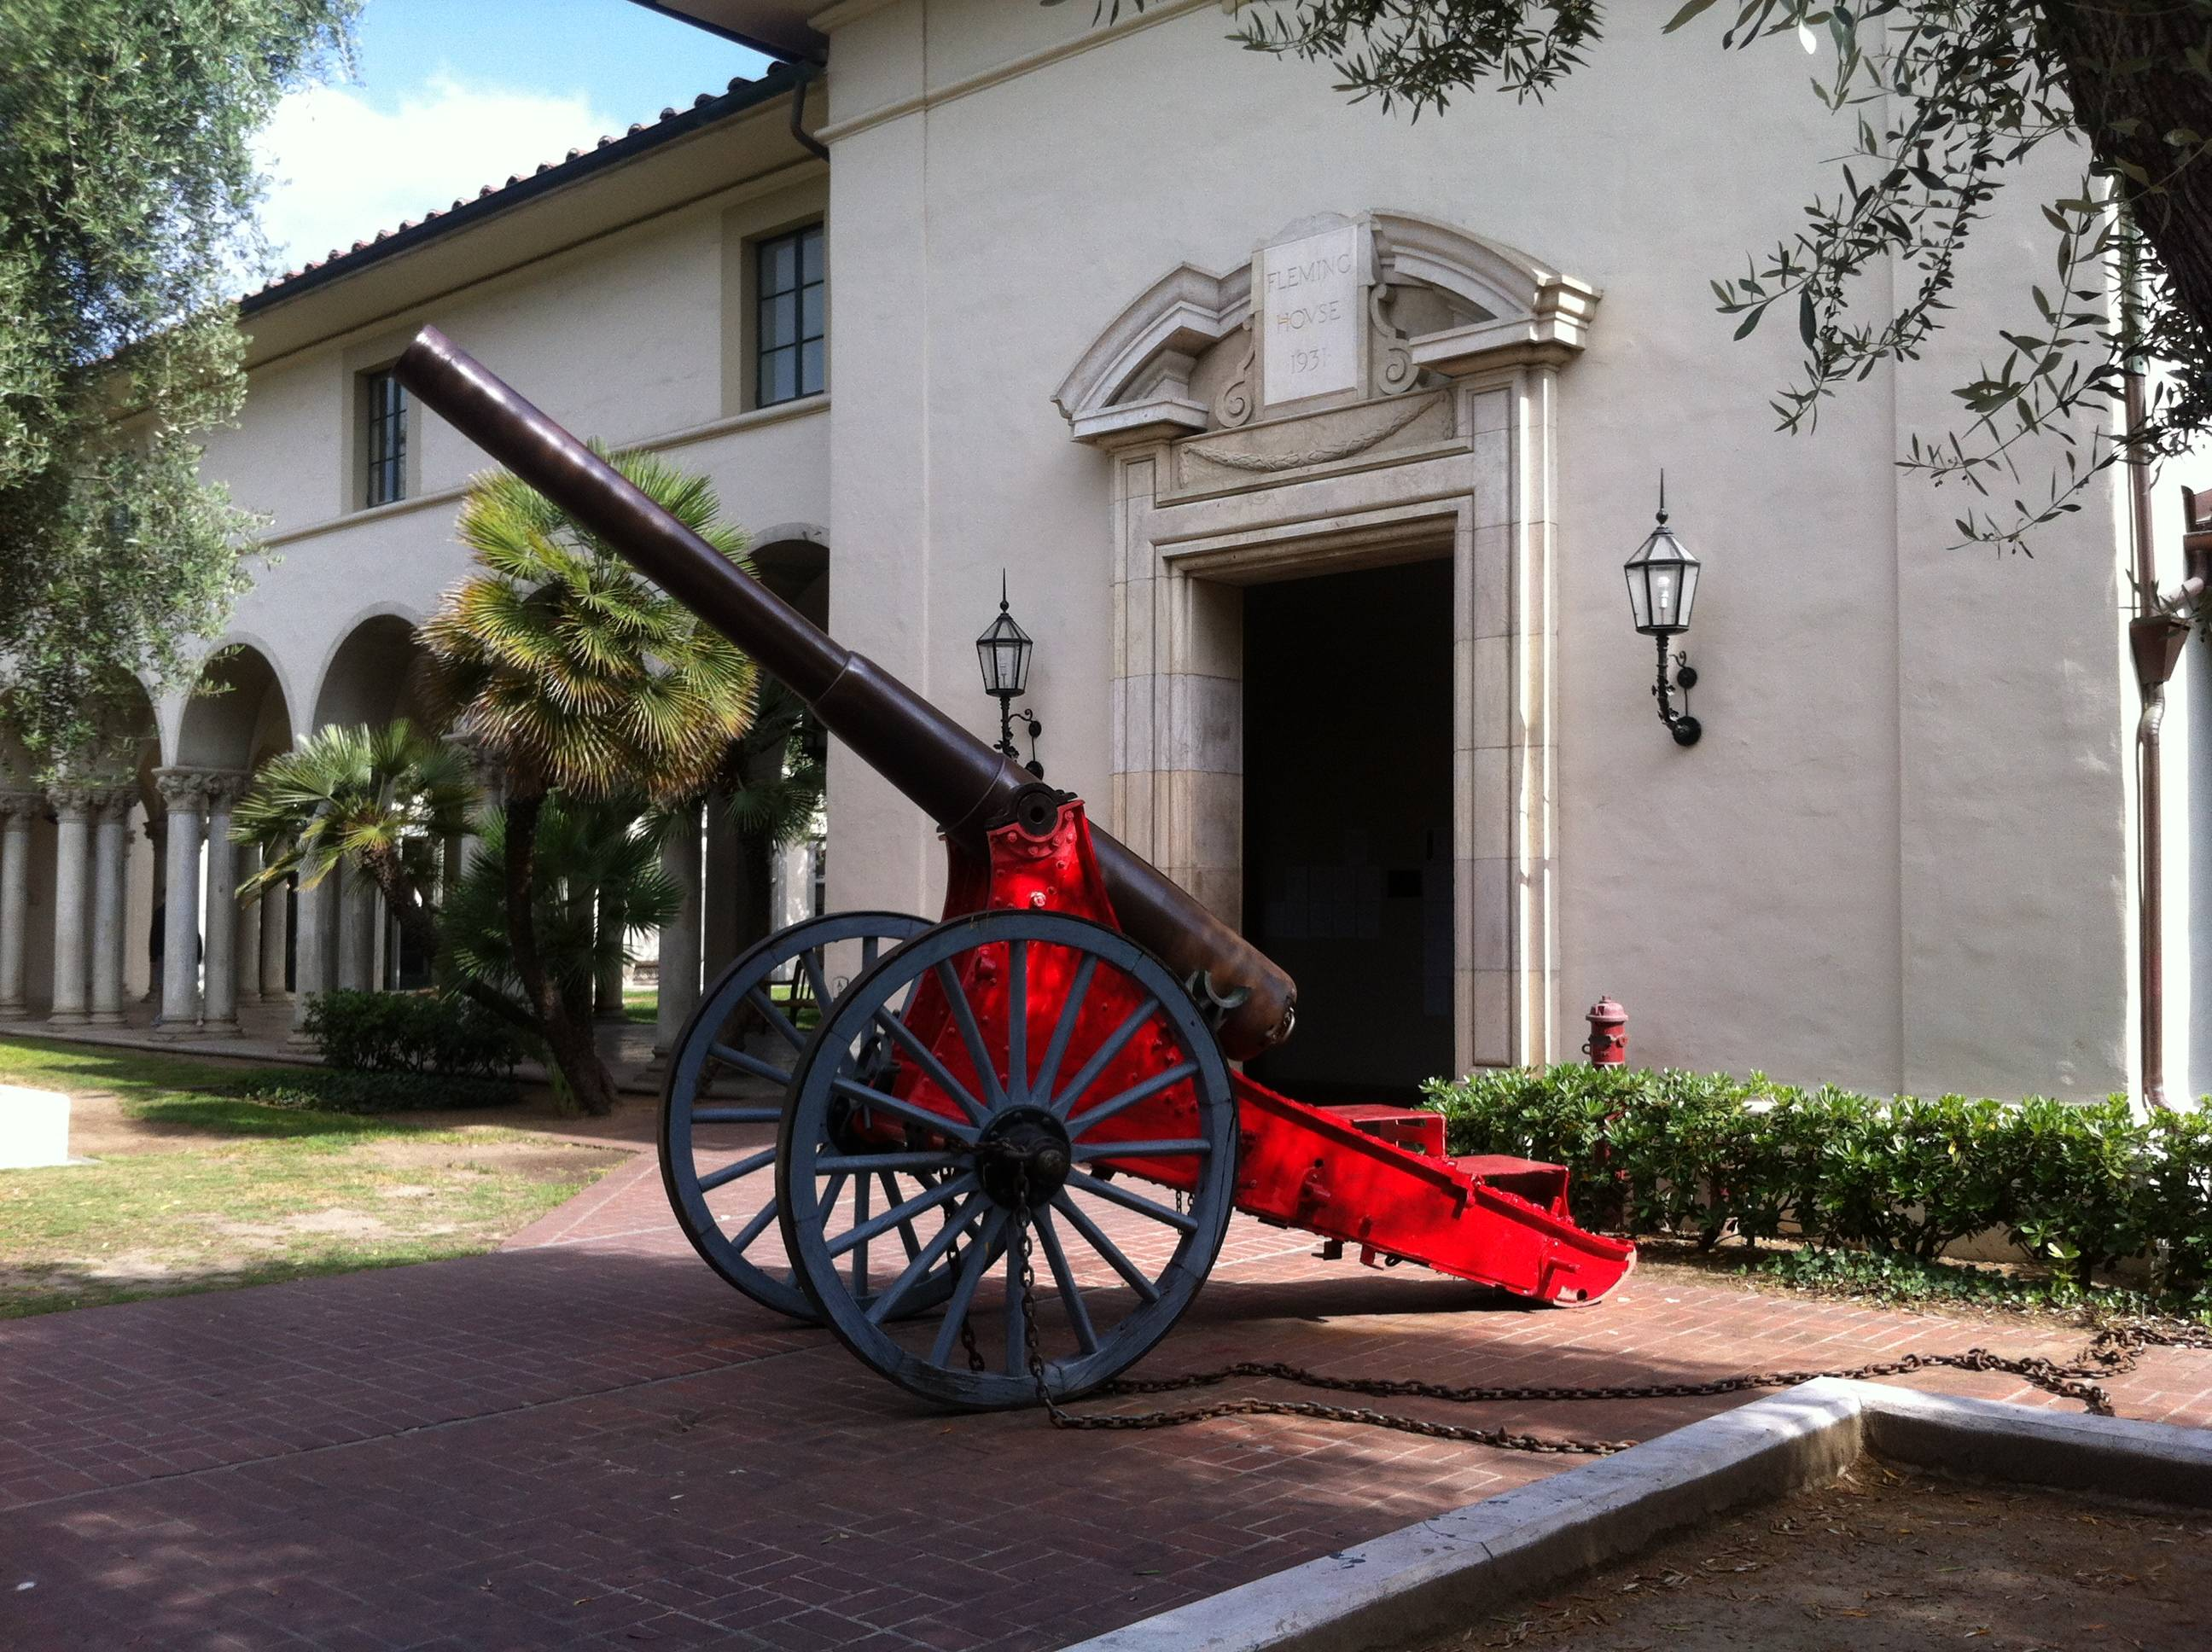 California Institute of Technology cannon